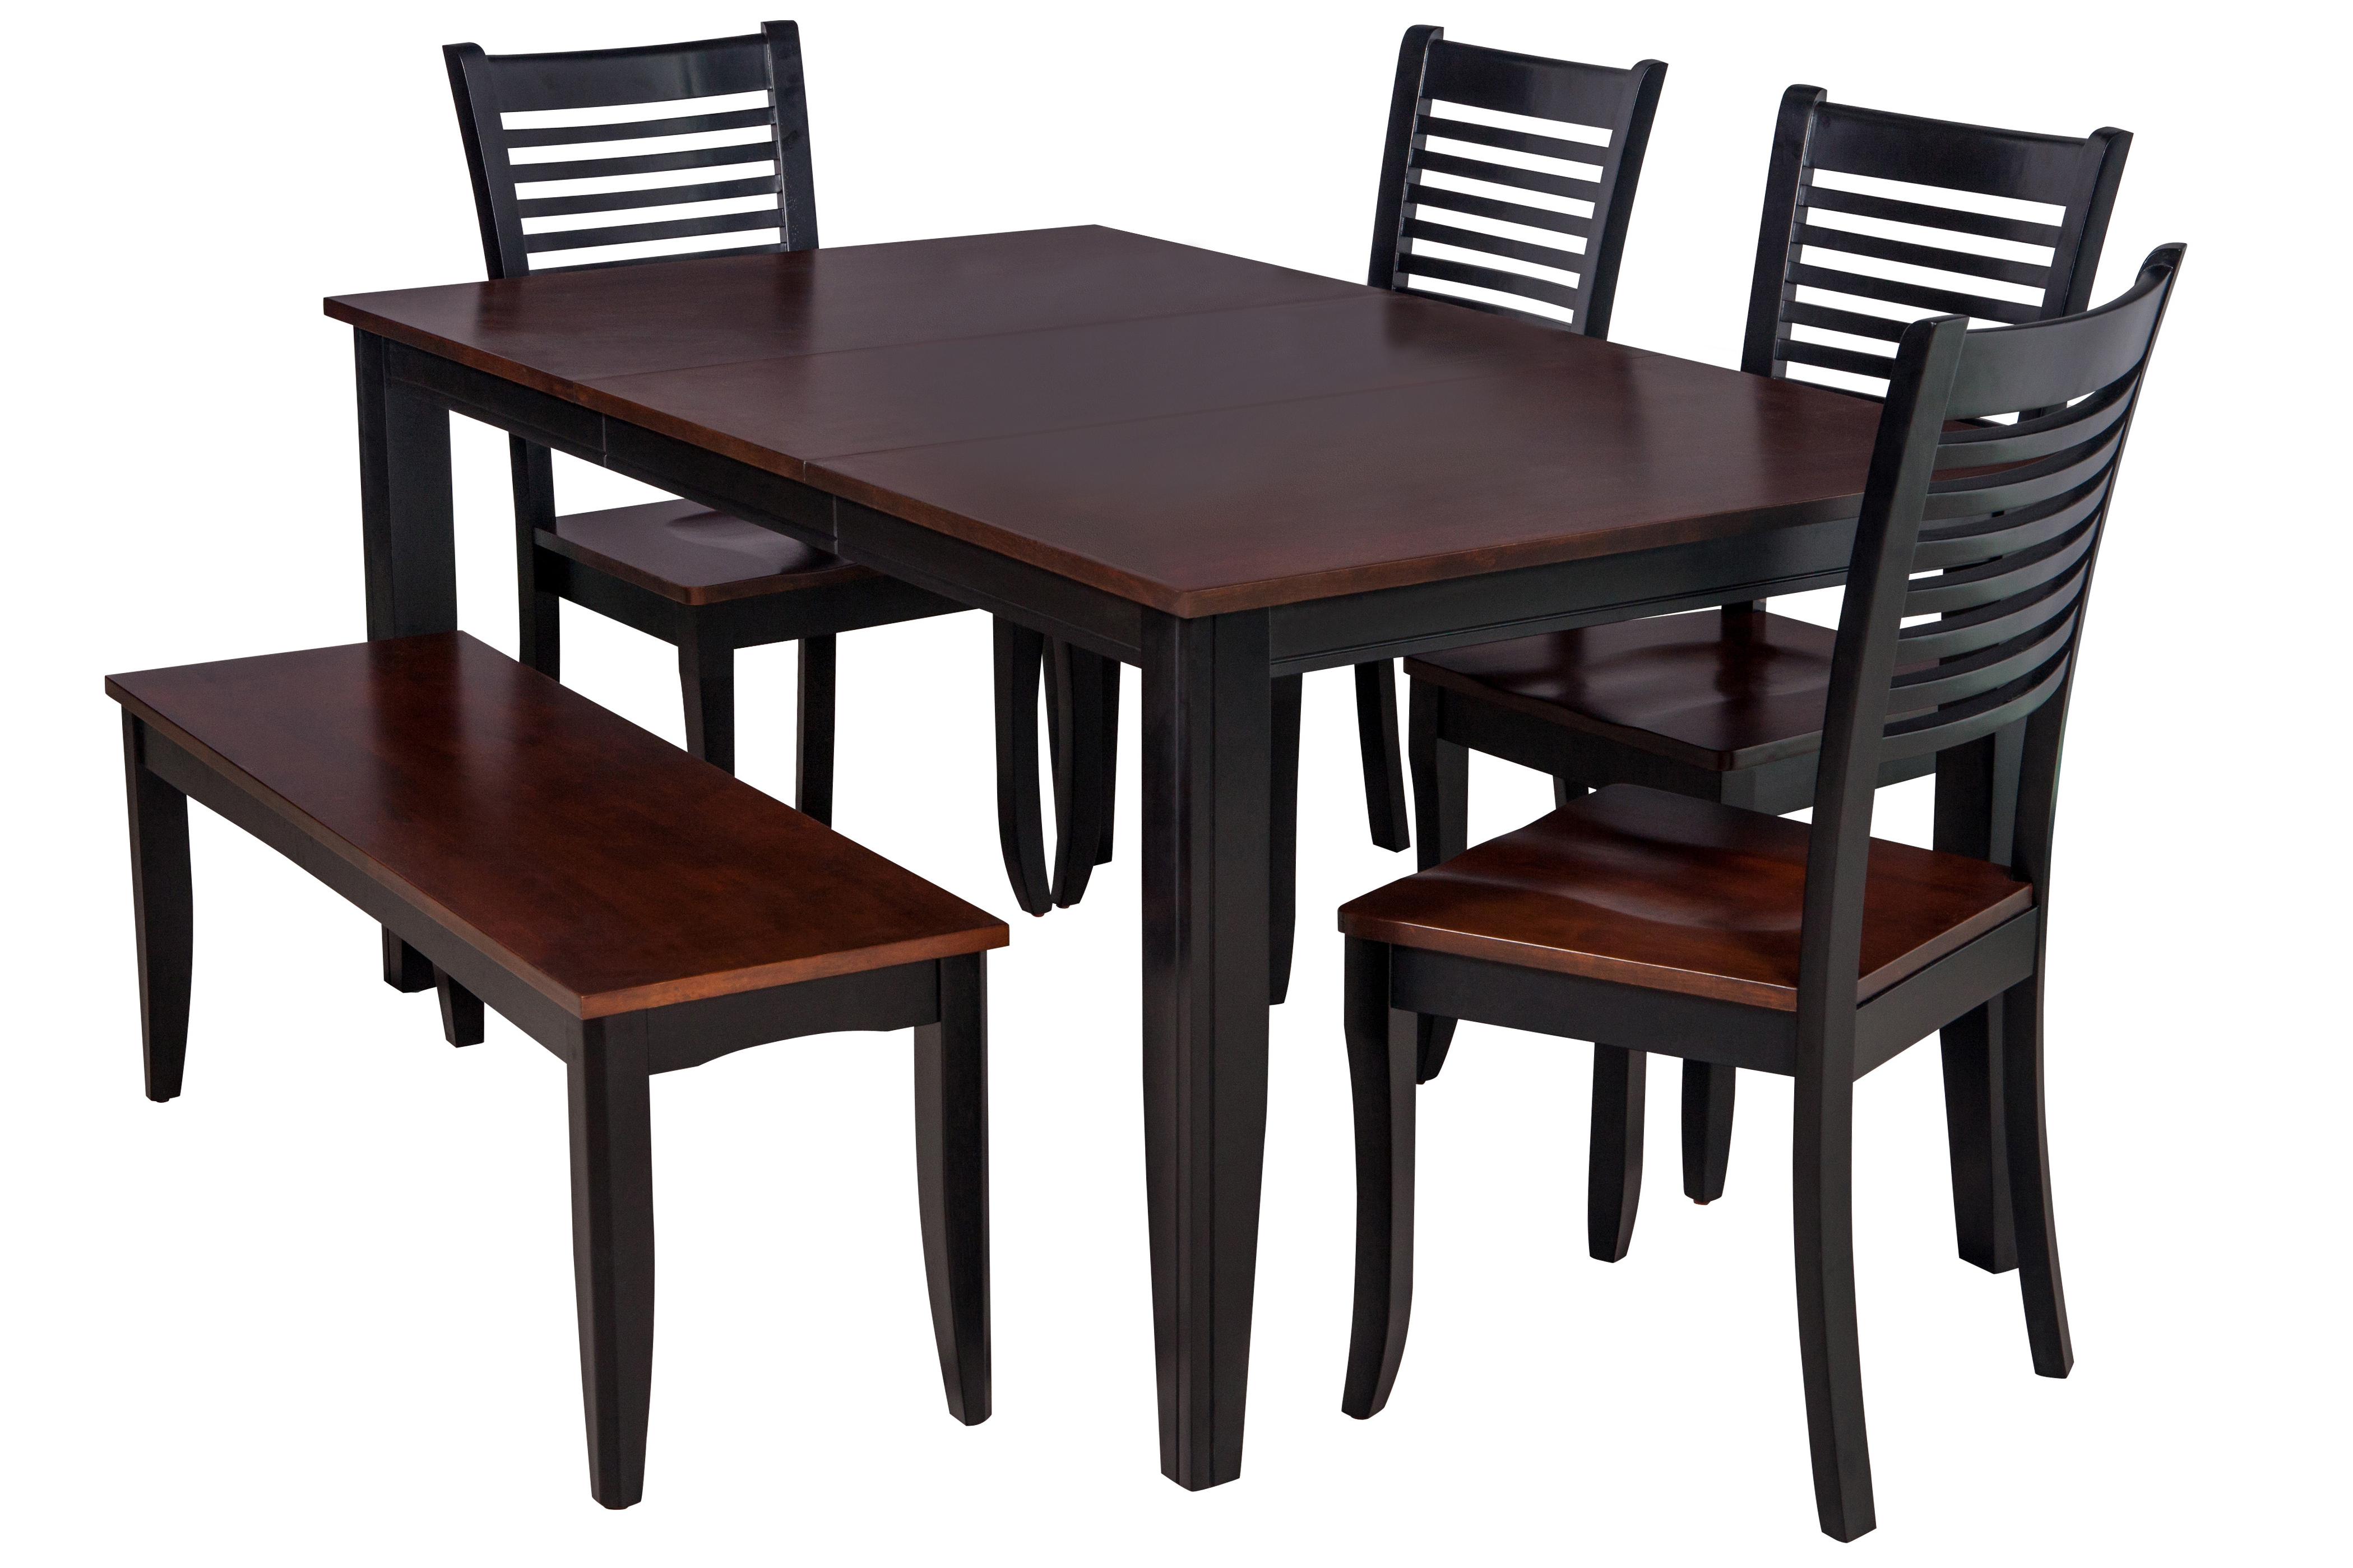 2017 Ttp Furnish Inside Adan 5 Piece Solid Wood Dining Sets (Set Of 5) (View 1 of 20)